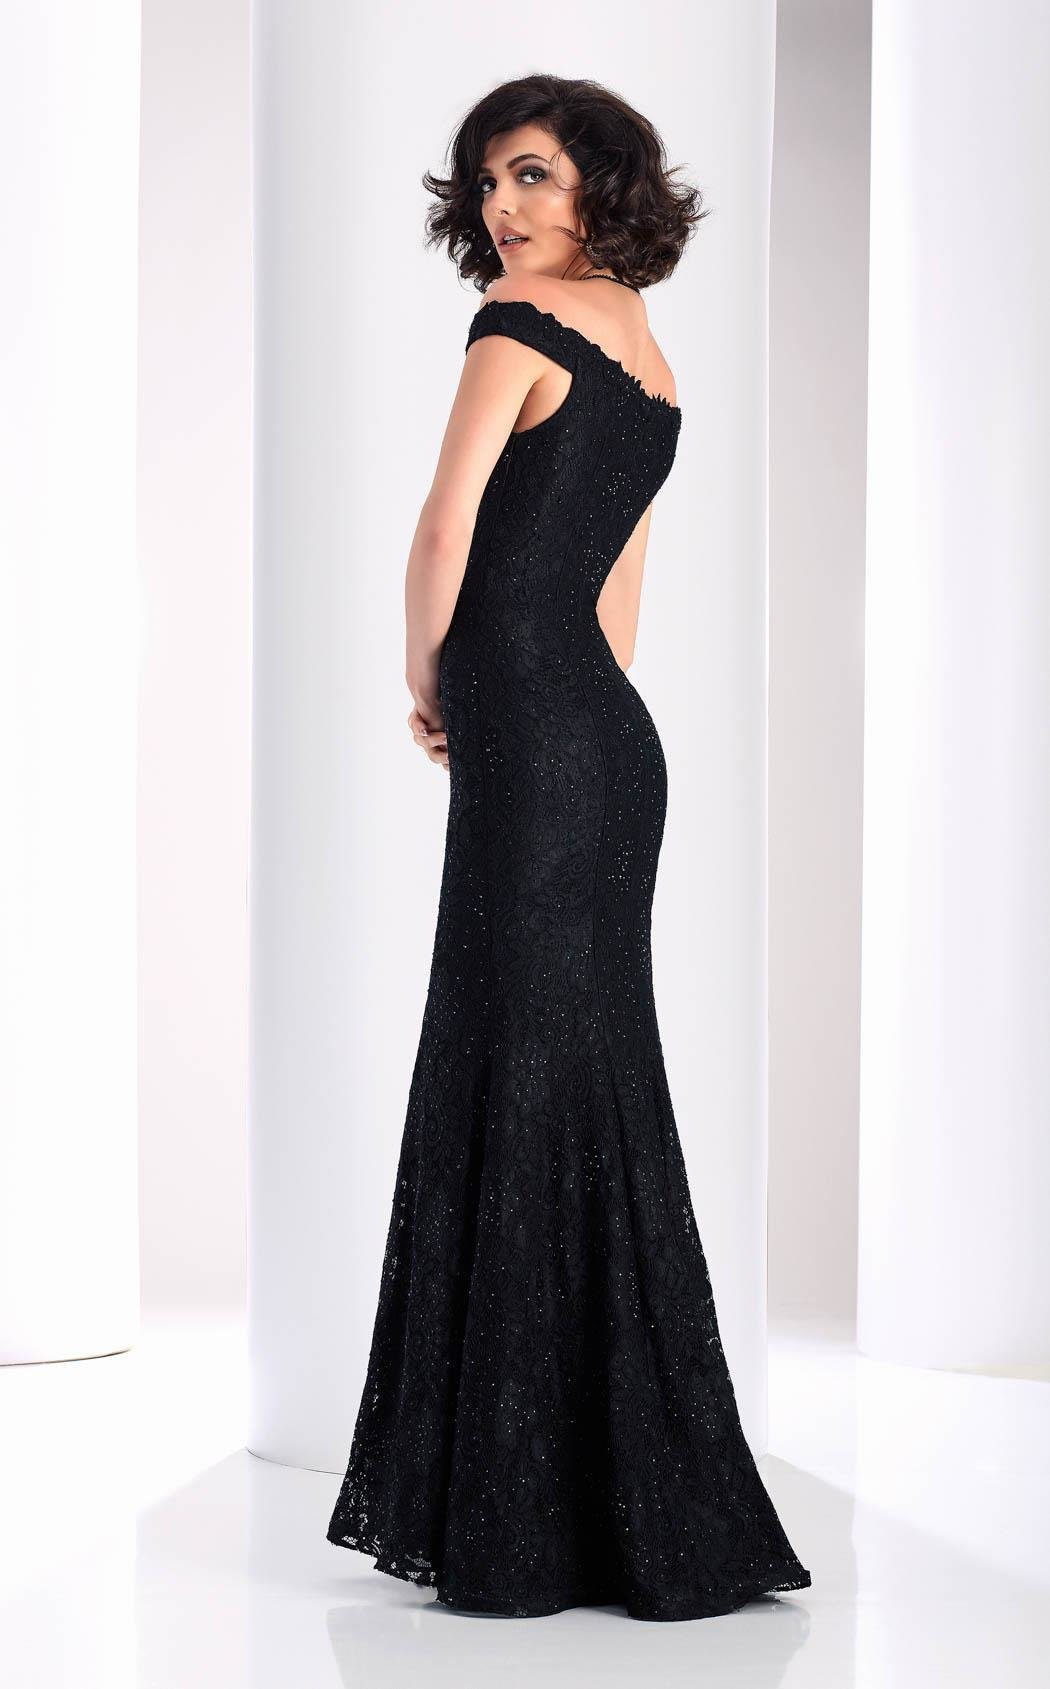 Lace Evening Gown by Clarisse | Prom and Homecoming Dresses ...